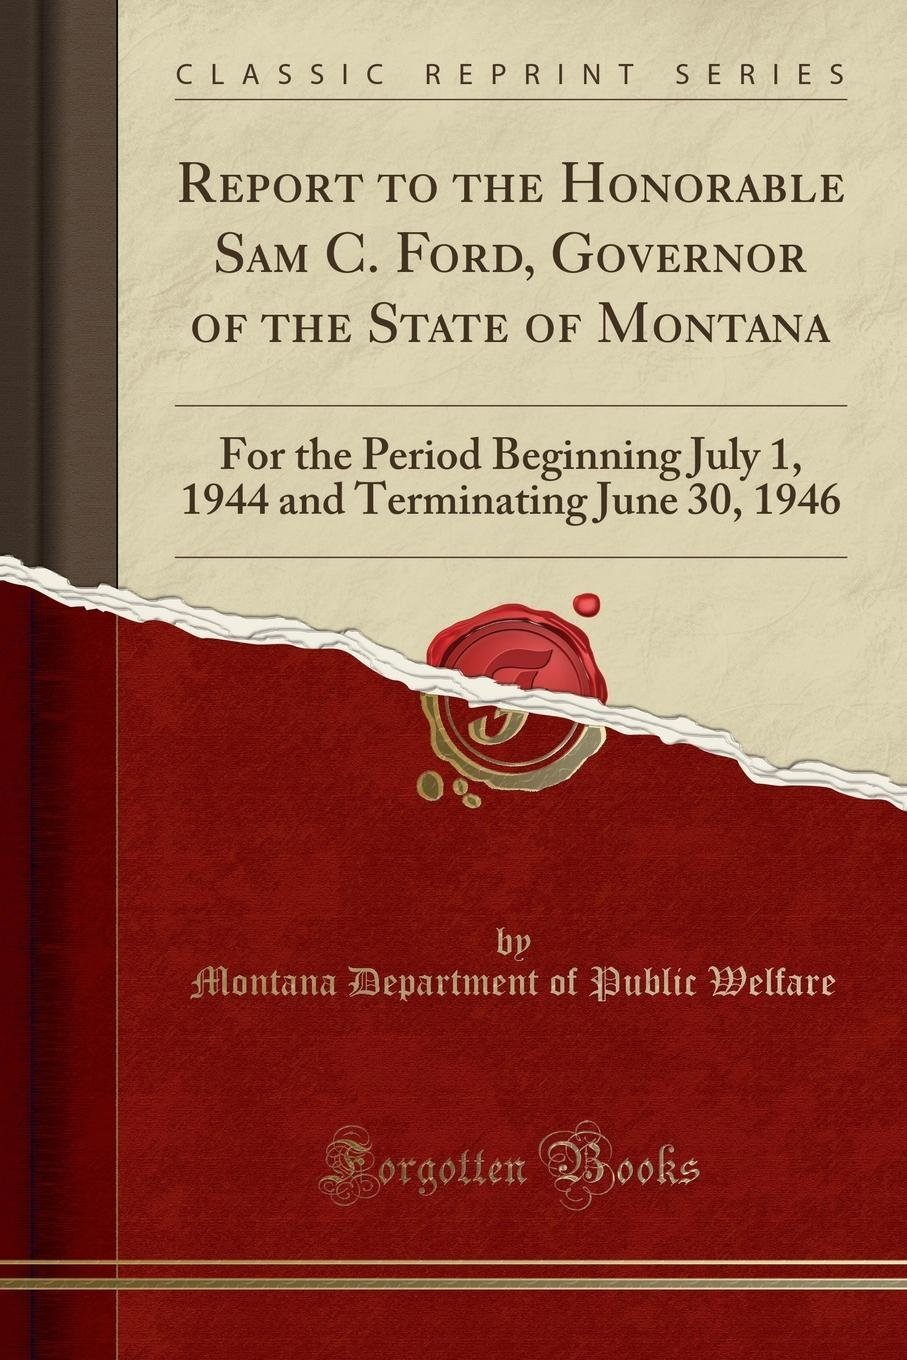 Report to the Honorable Sam C. Ford, Governor of the State of Montana: For the Period Beginning July 1, 1944 and Terminating June 30, 1946 (Classic Reprint) pdf